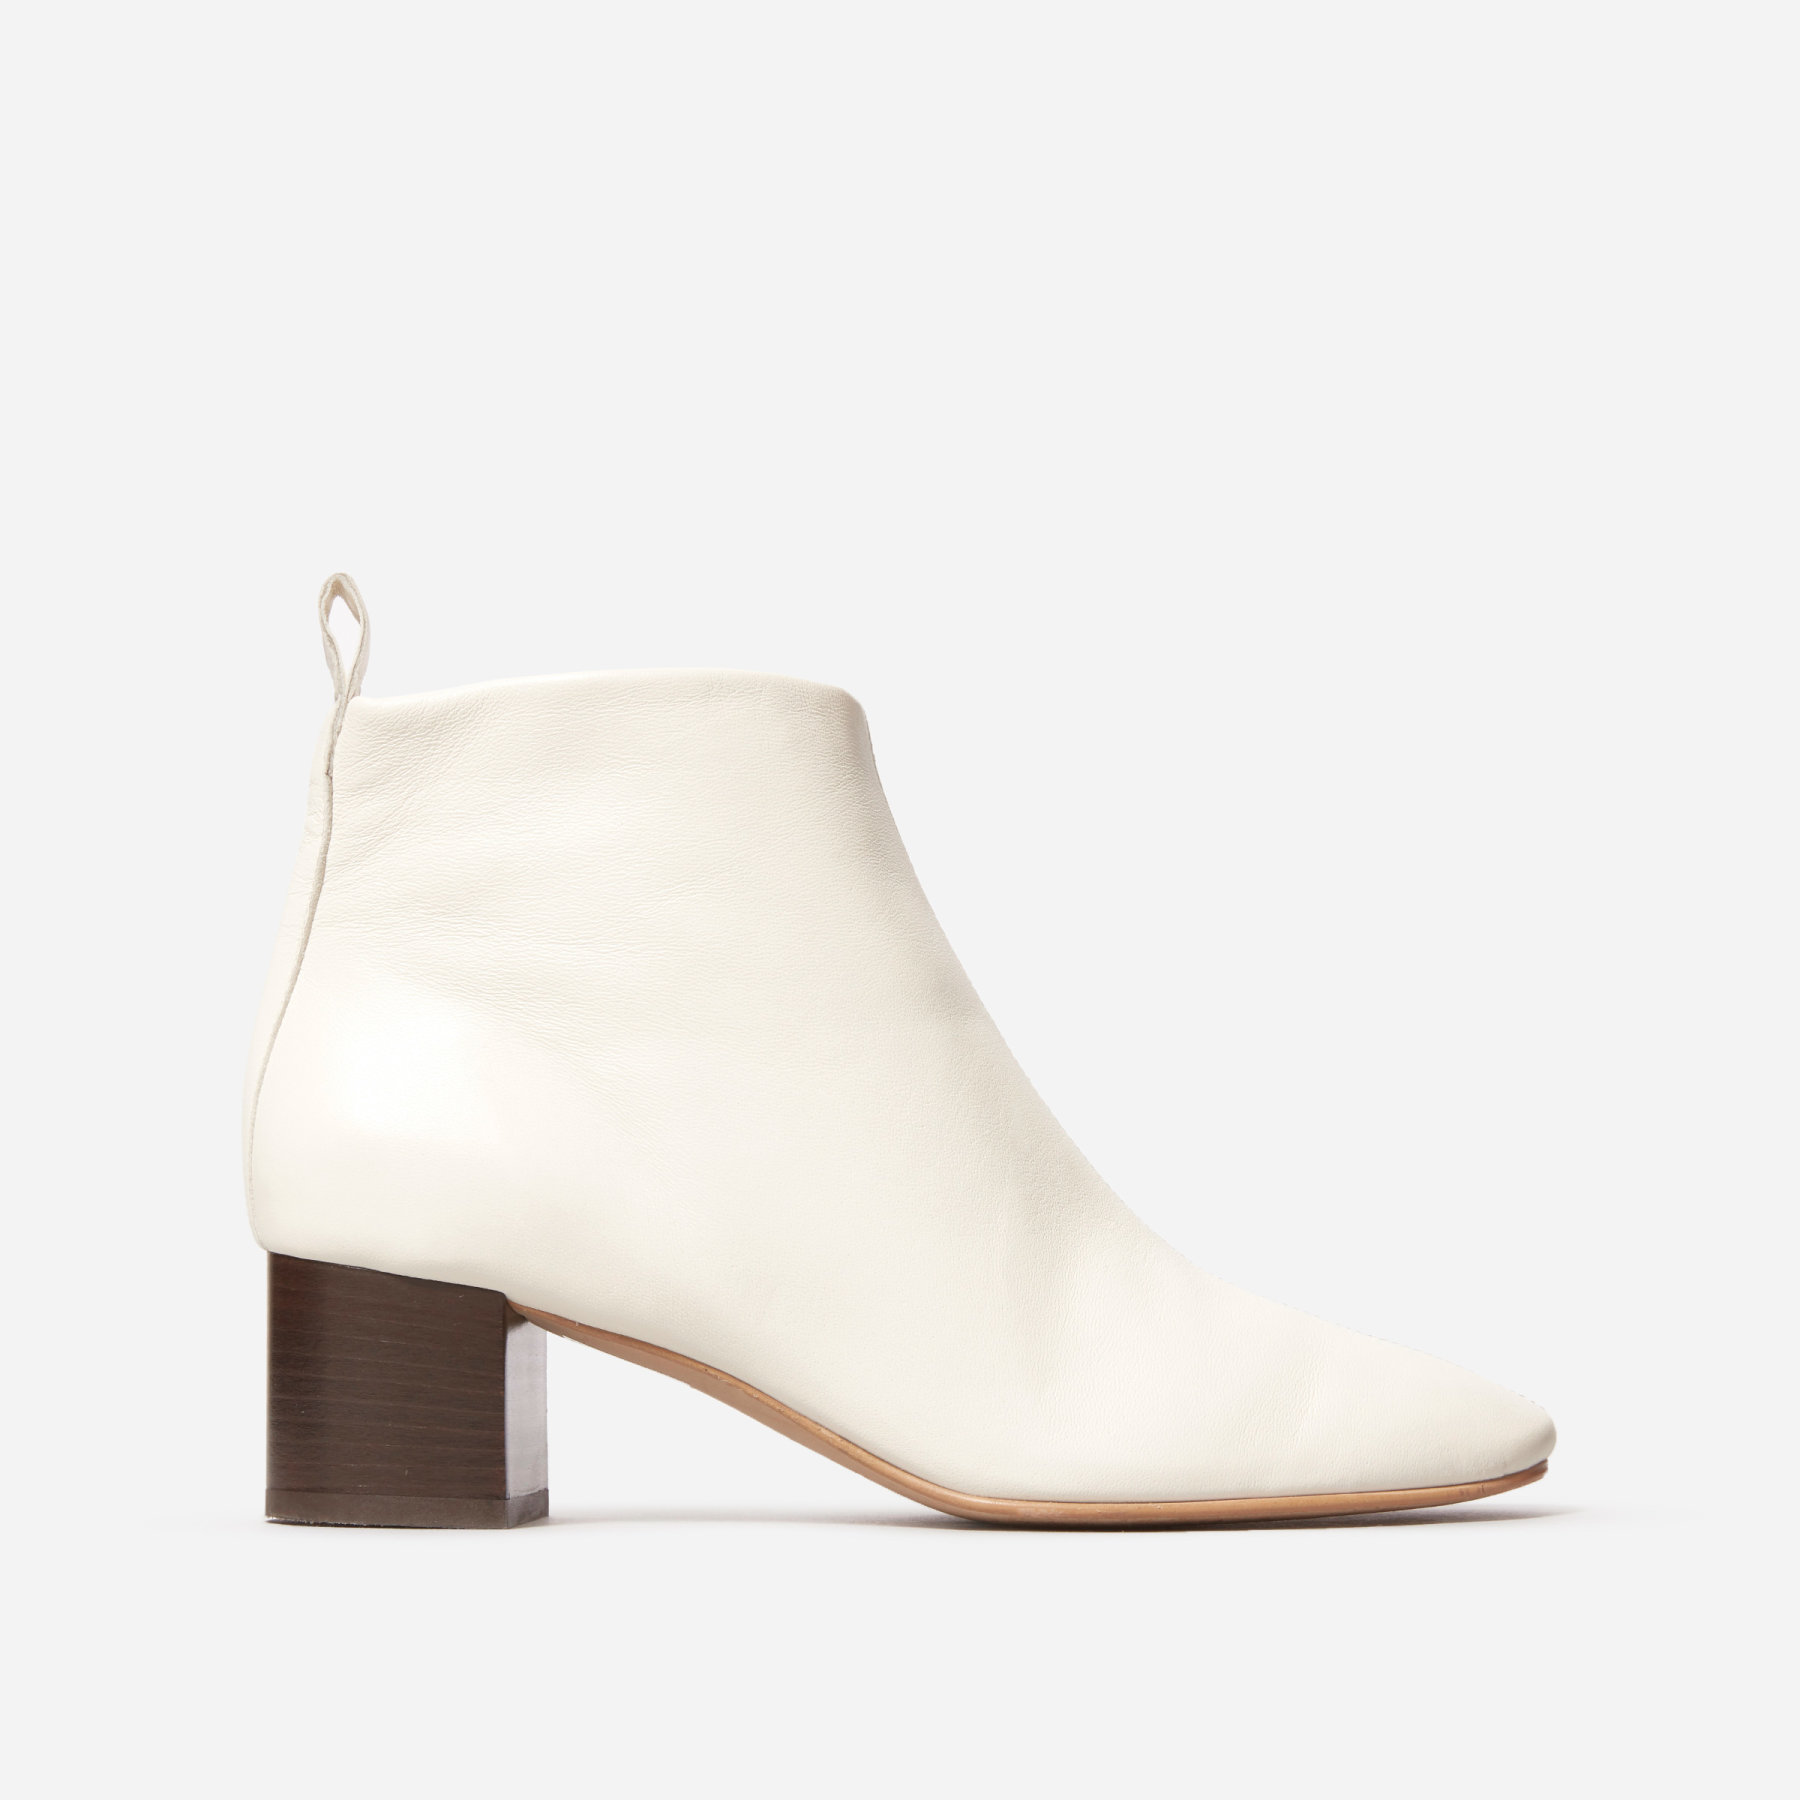 Chic White Boots You'll Wear With